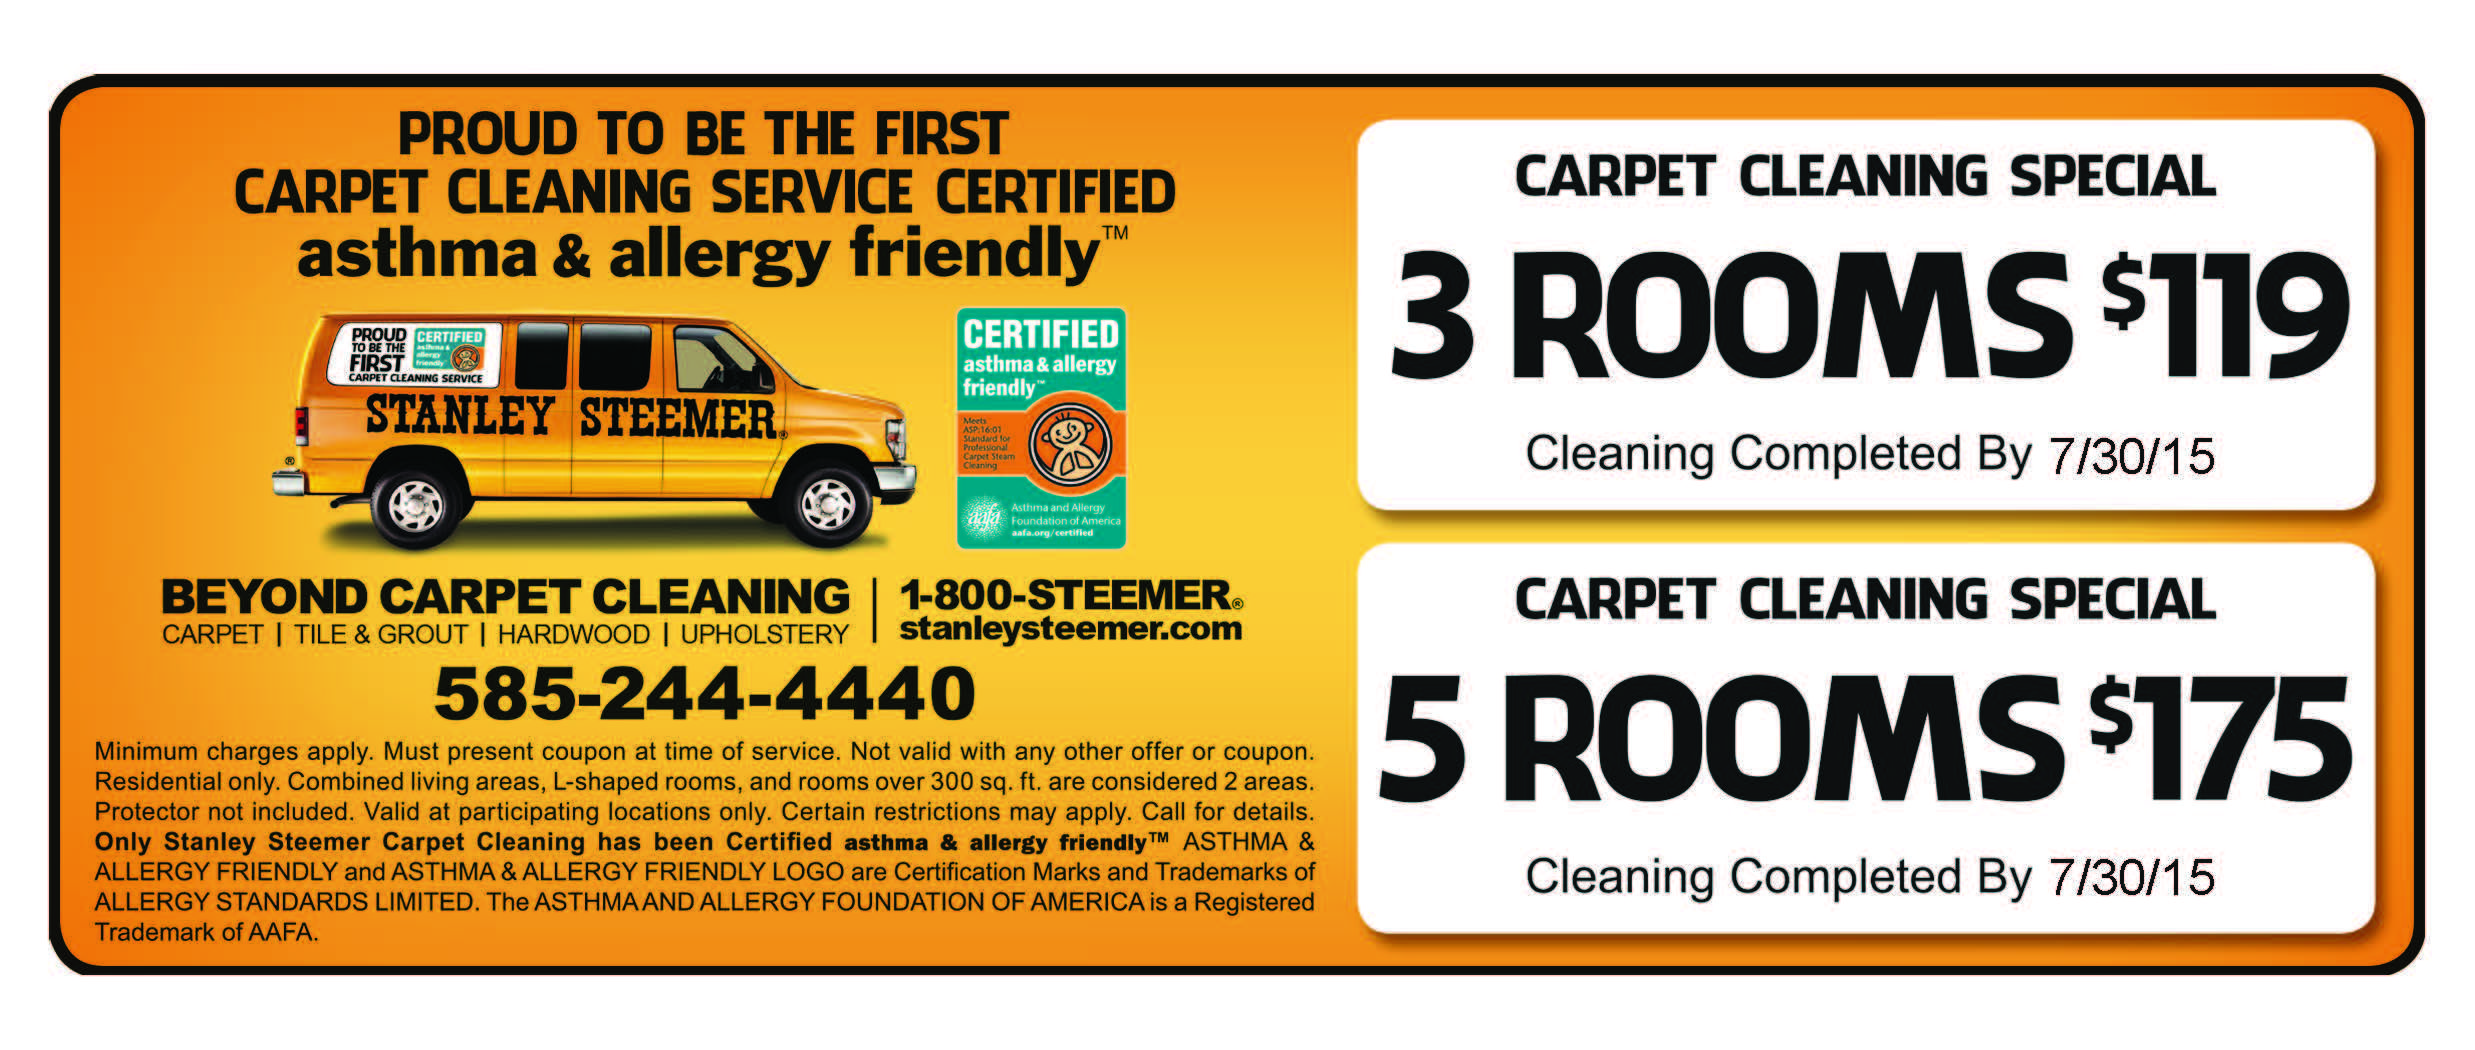 Sears Sofa Cleaning Coupon Mart Couch Warranty Stanley Steemer Coupons And Specials Rochester Ny Home